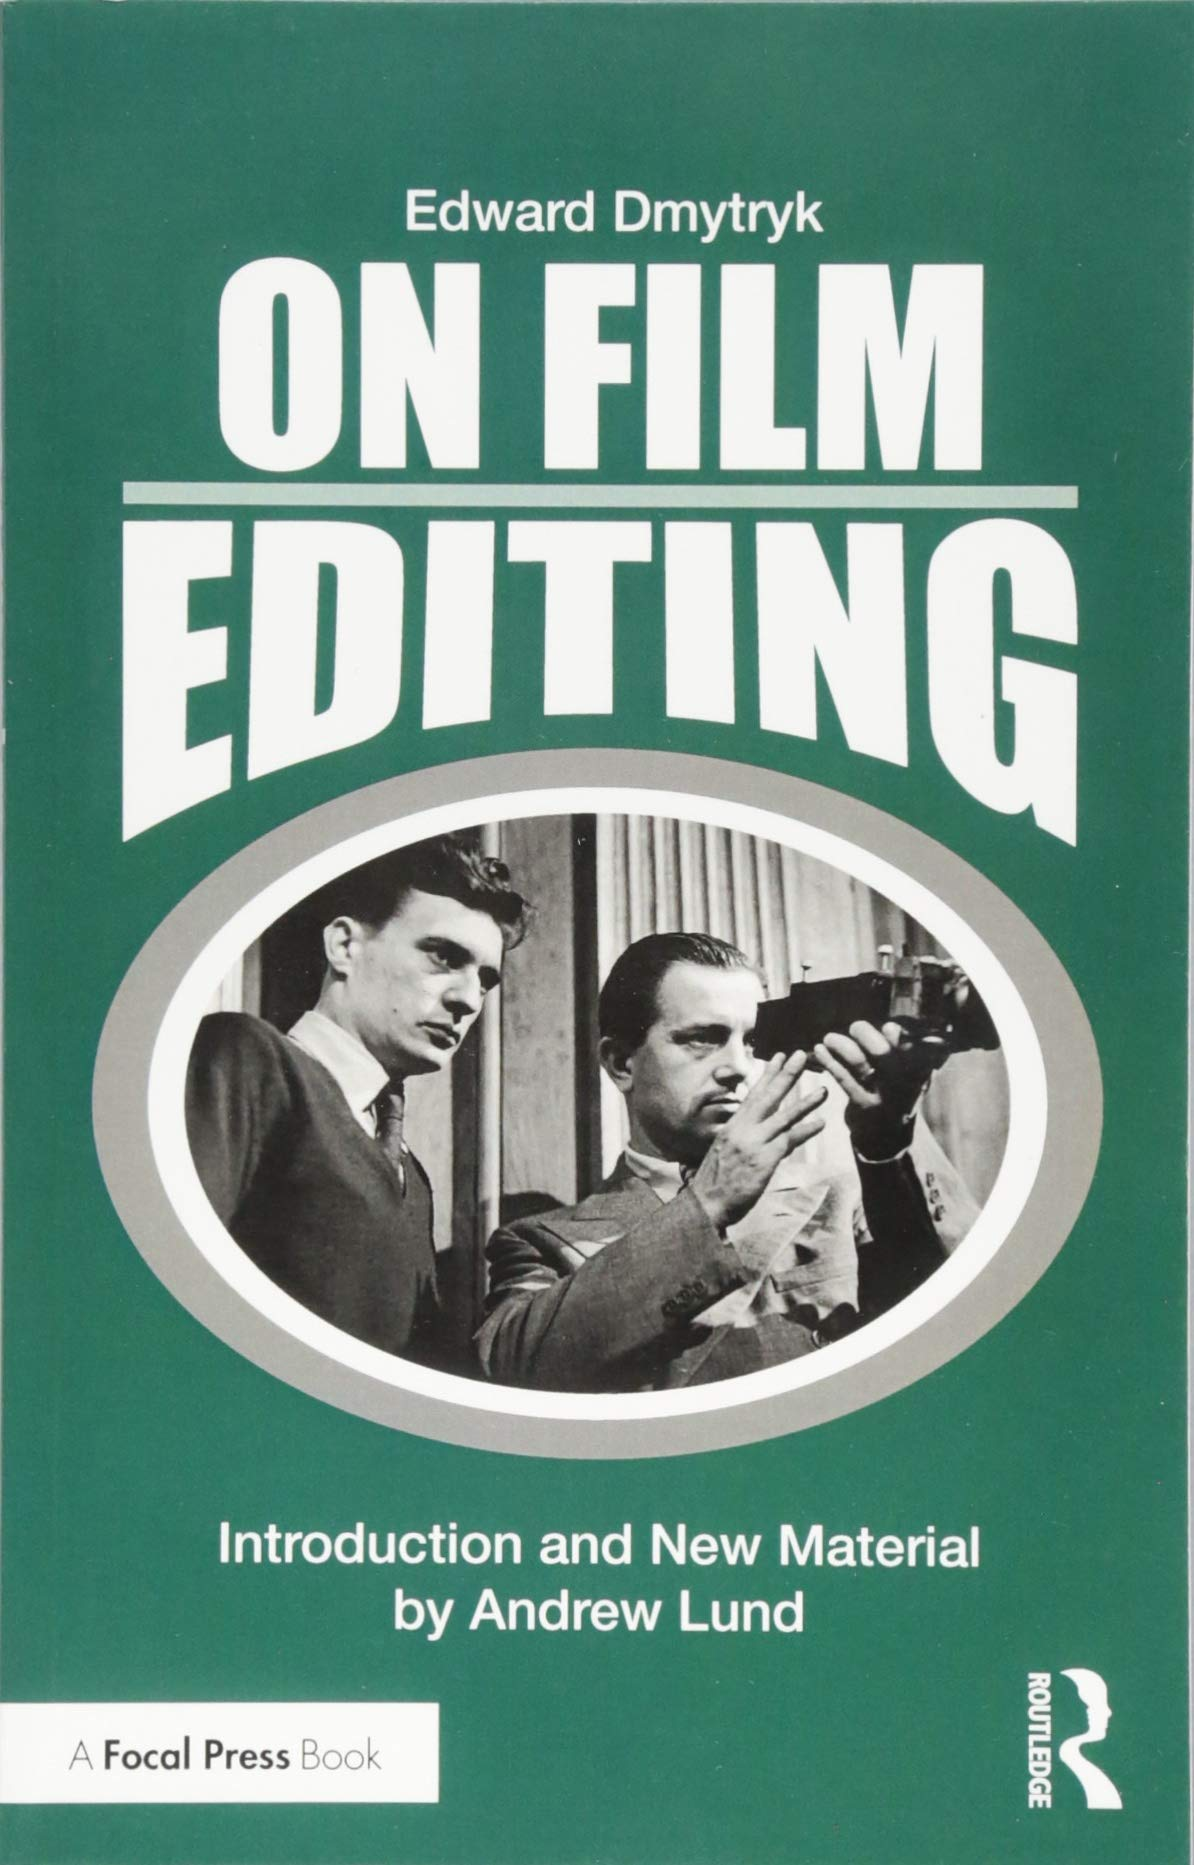 On Film Editing book cover - ON FILM EDITING According to Edward Dmytryk - thescriptblog.com